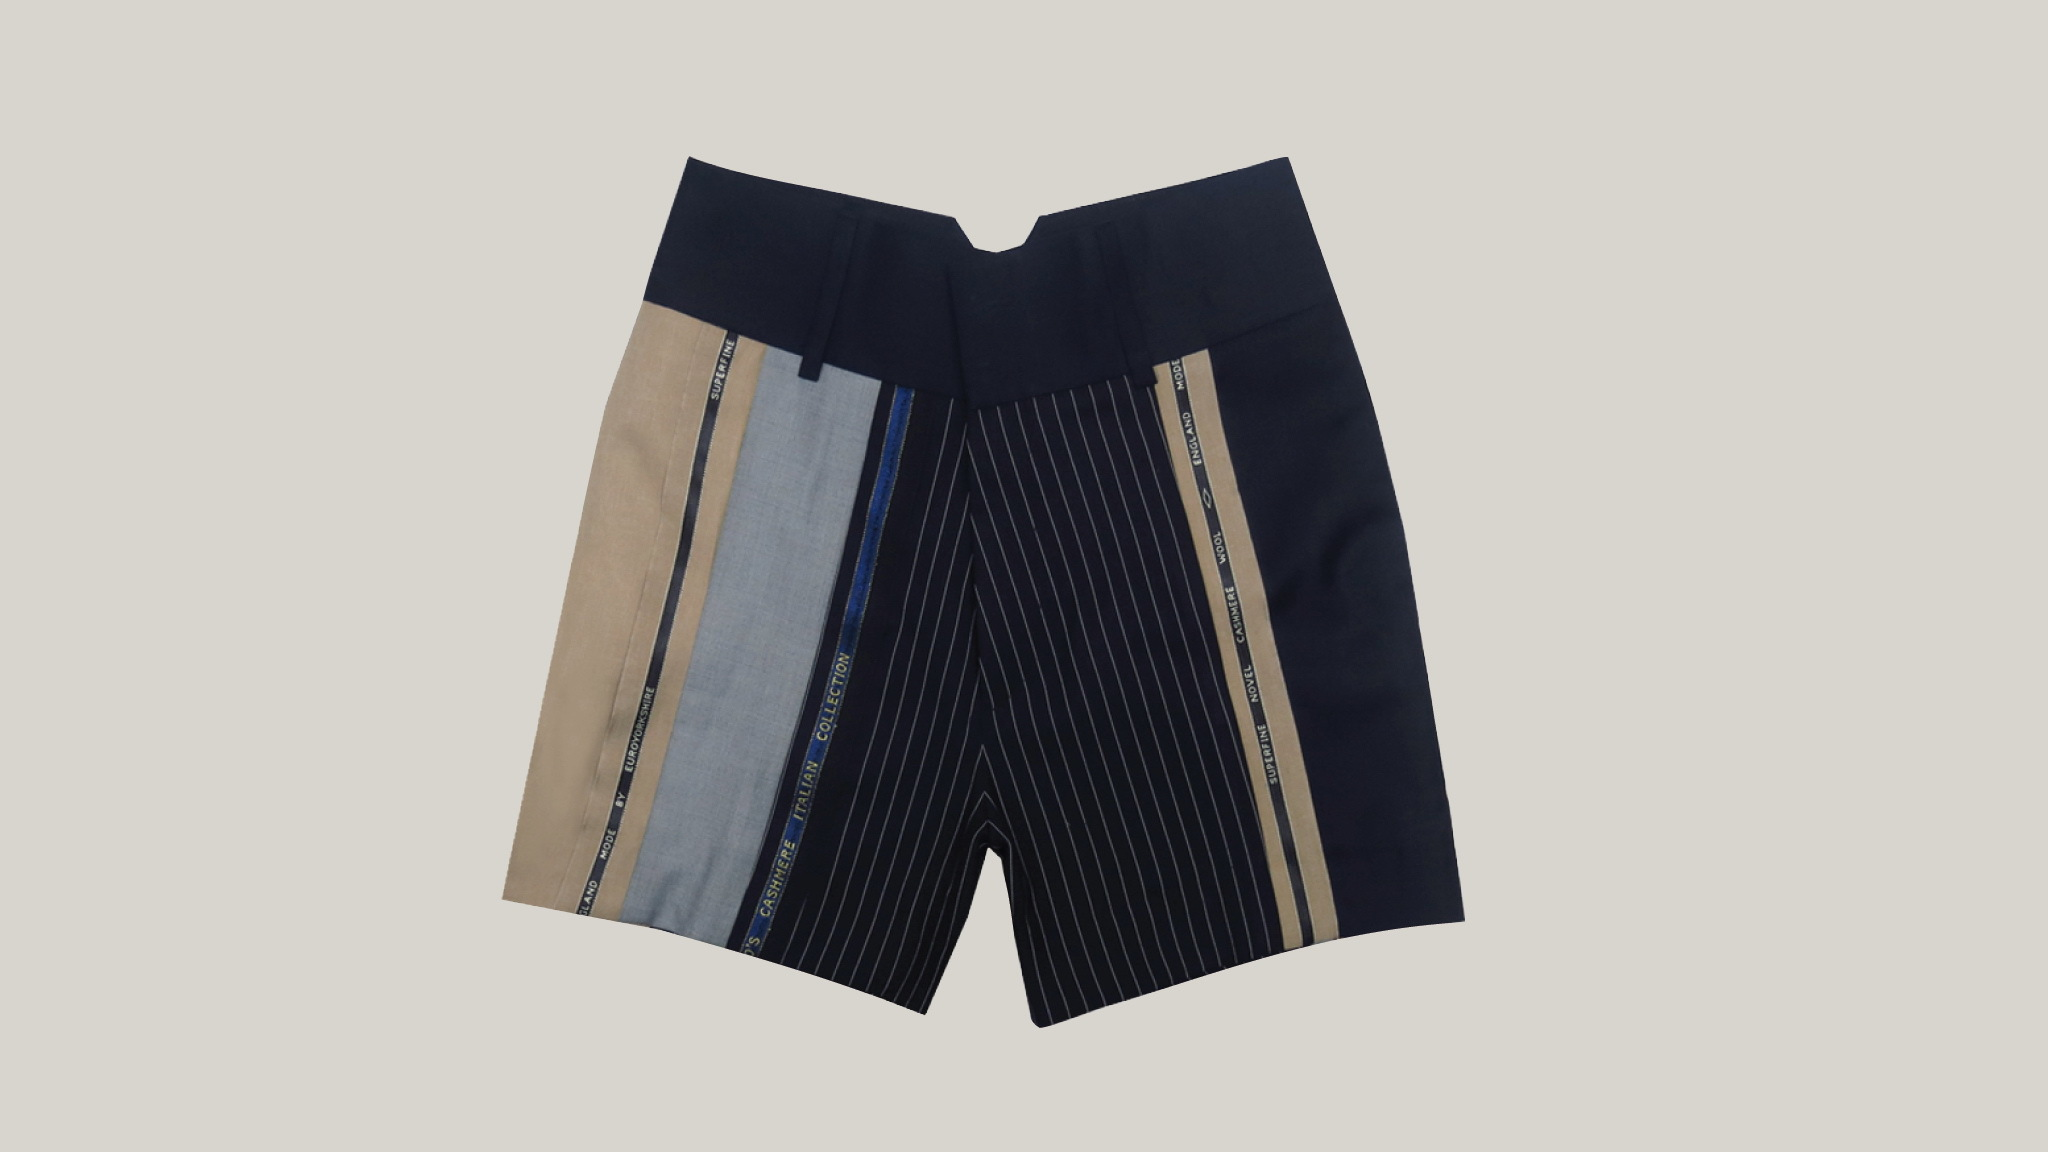 Shorts, Q Design & Play, Gift Guide